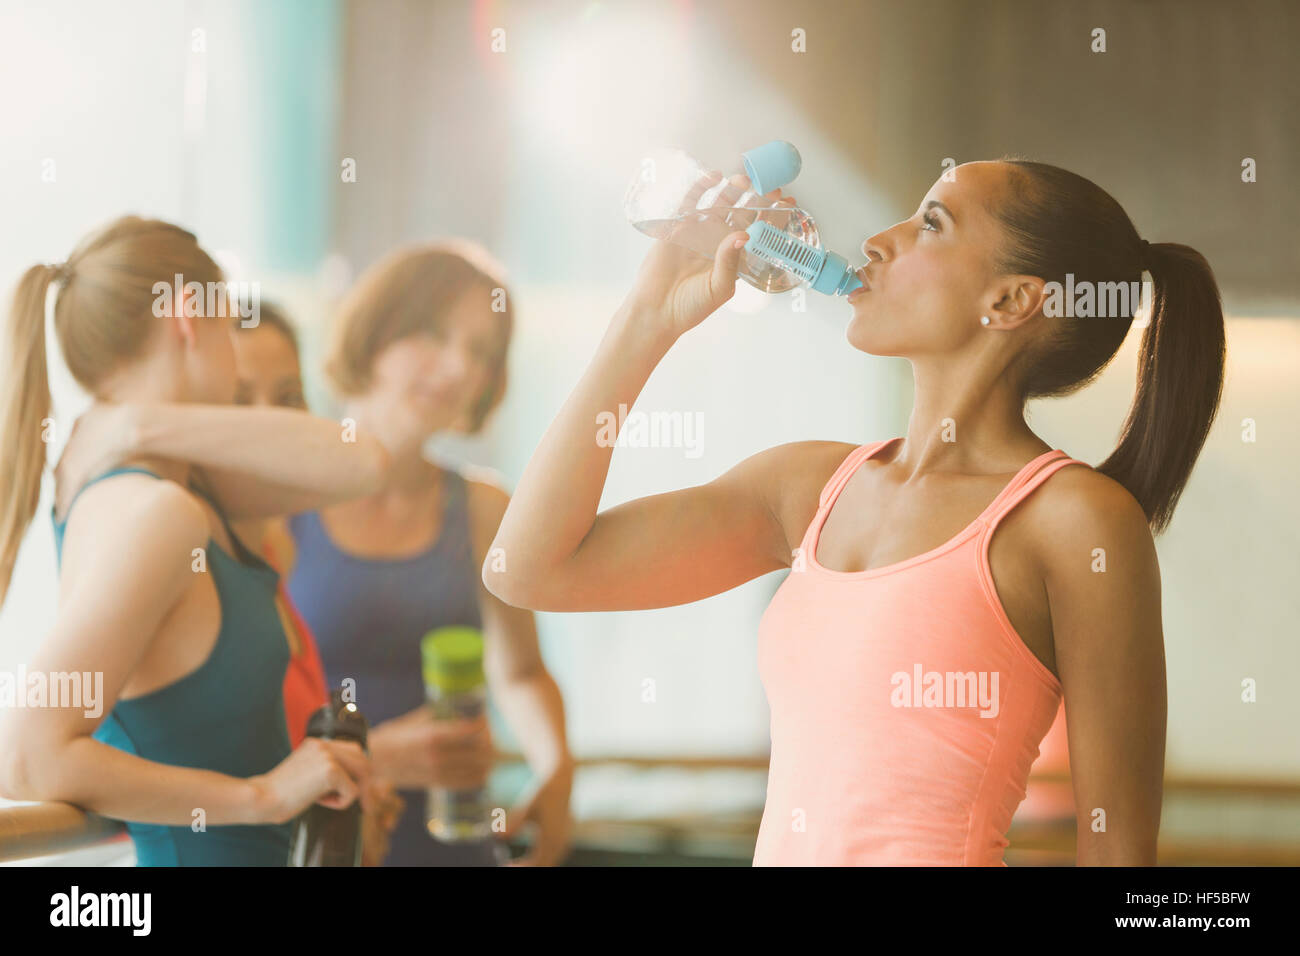 Woman drinking water in exercise class gym studio Stock Photo